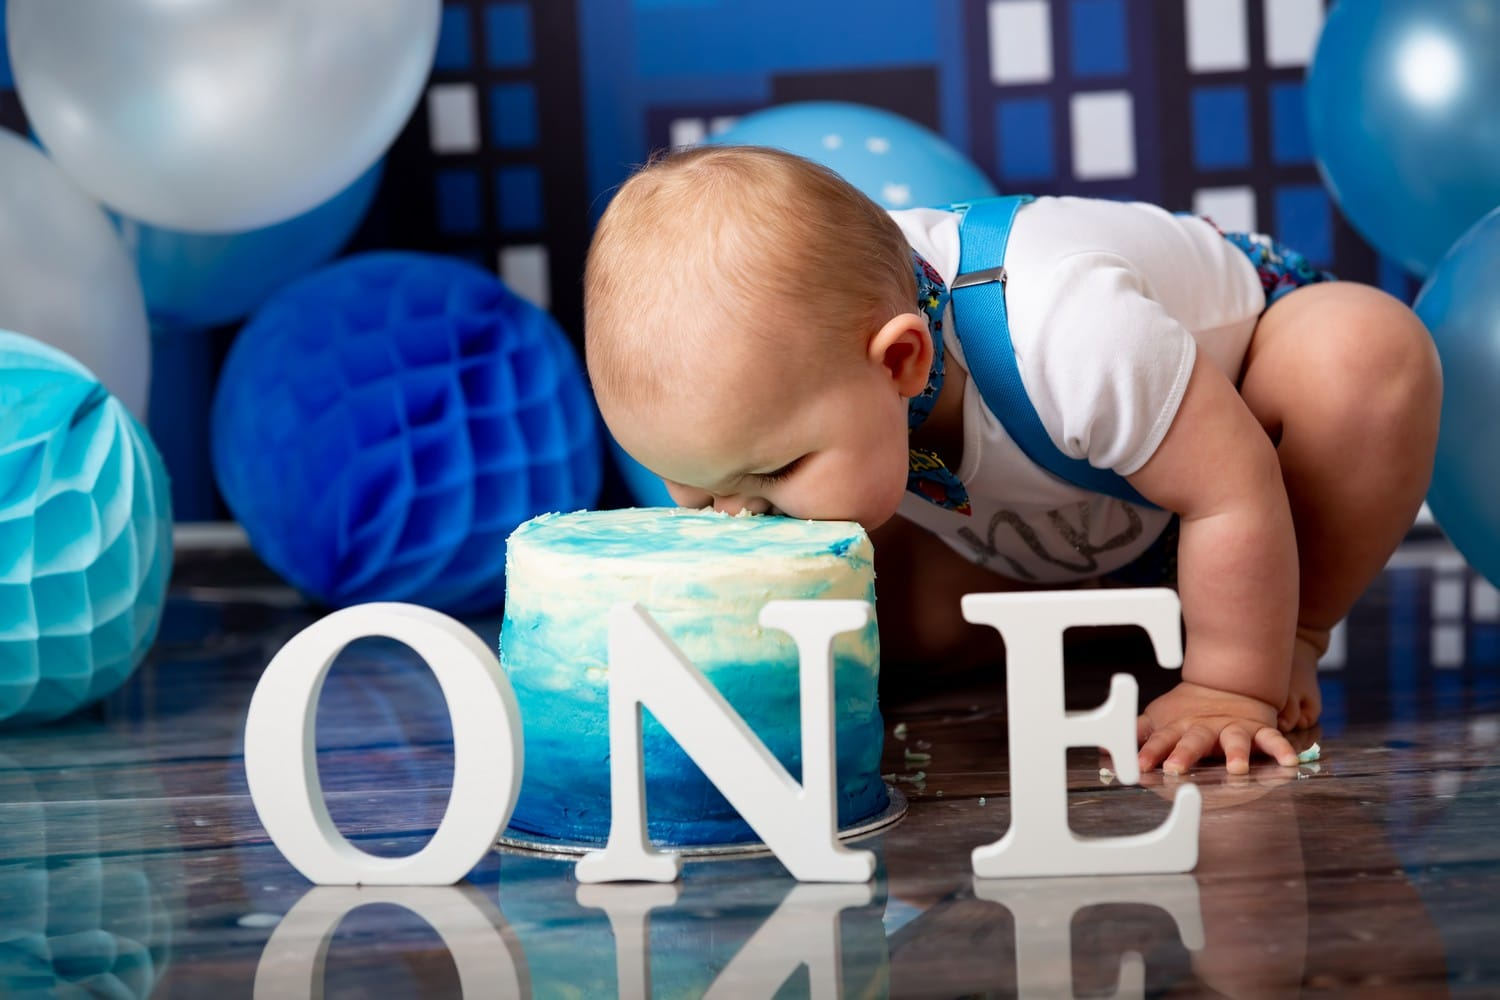 Wondrous Boys First Birthday Cake Smash Keltic Rose Photography Funny Birthday Cards Online Alyptdamsfinfo